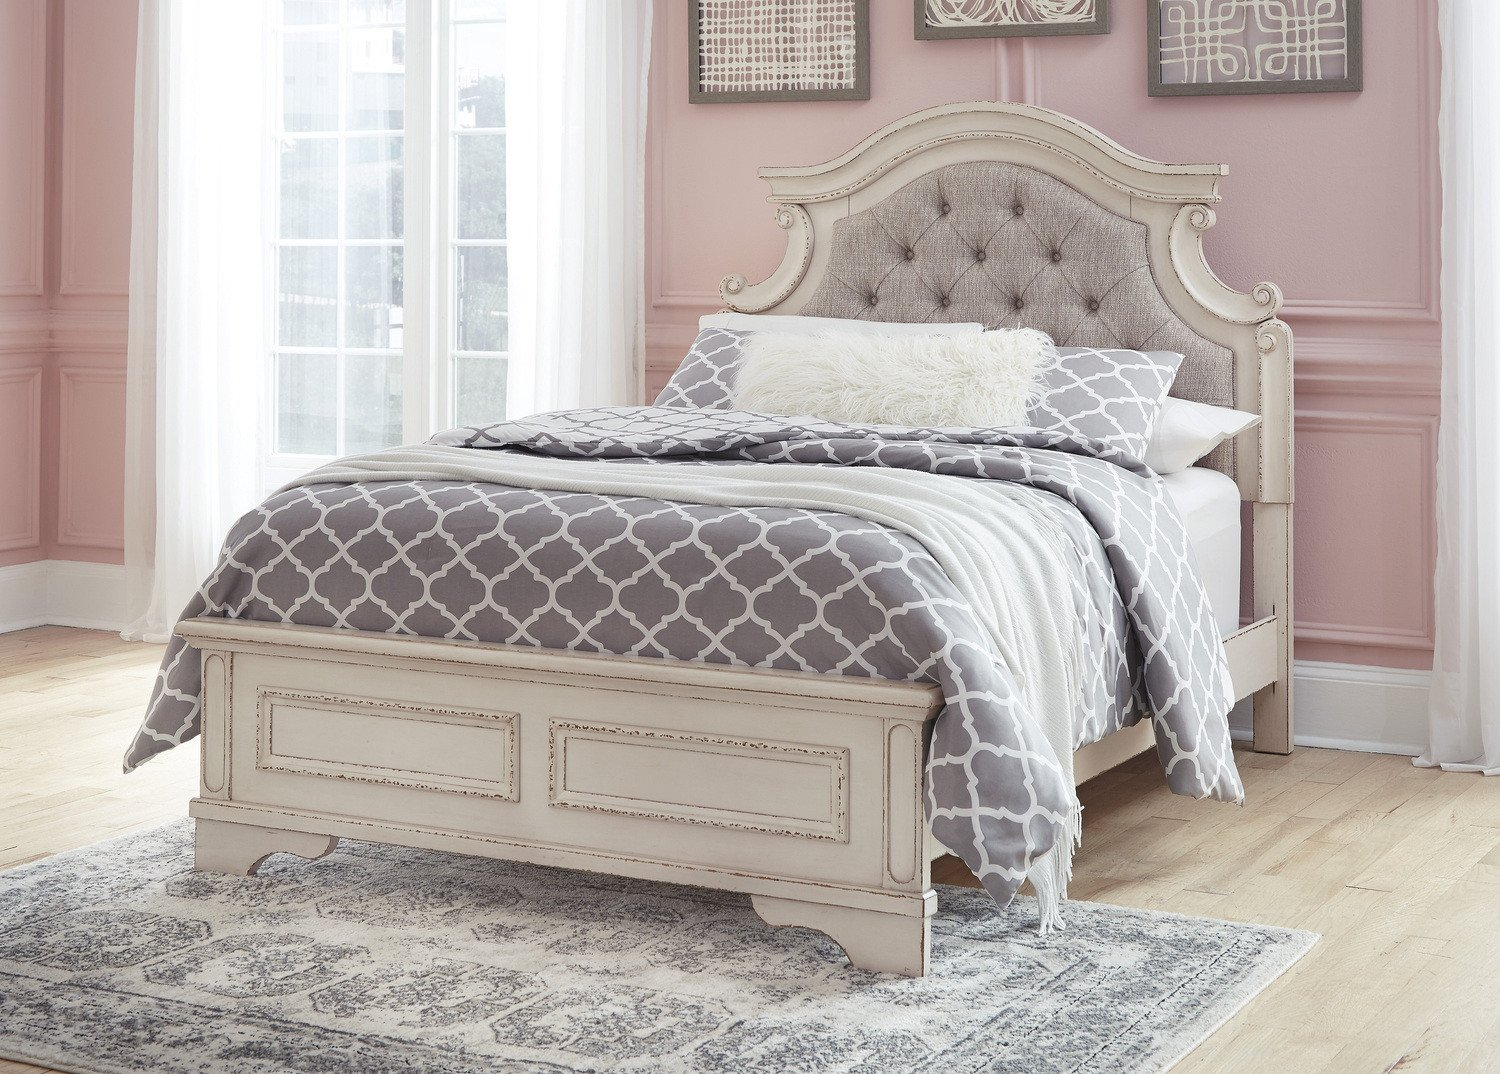 Ashley Furniture Bedroom Set 14 Piece Luxury ashley Furniture